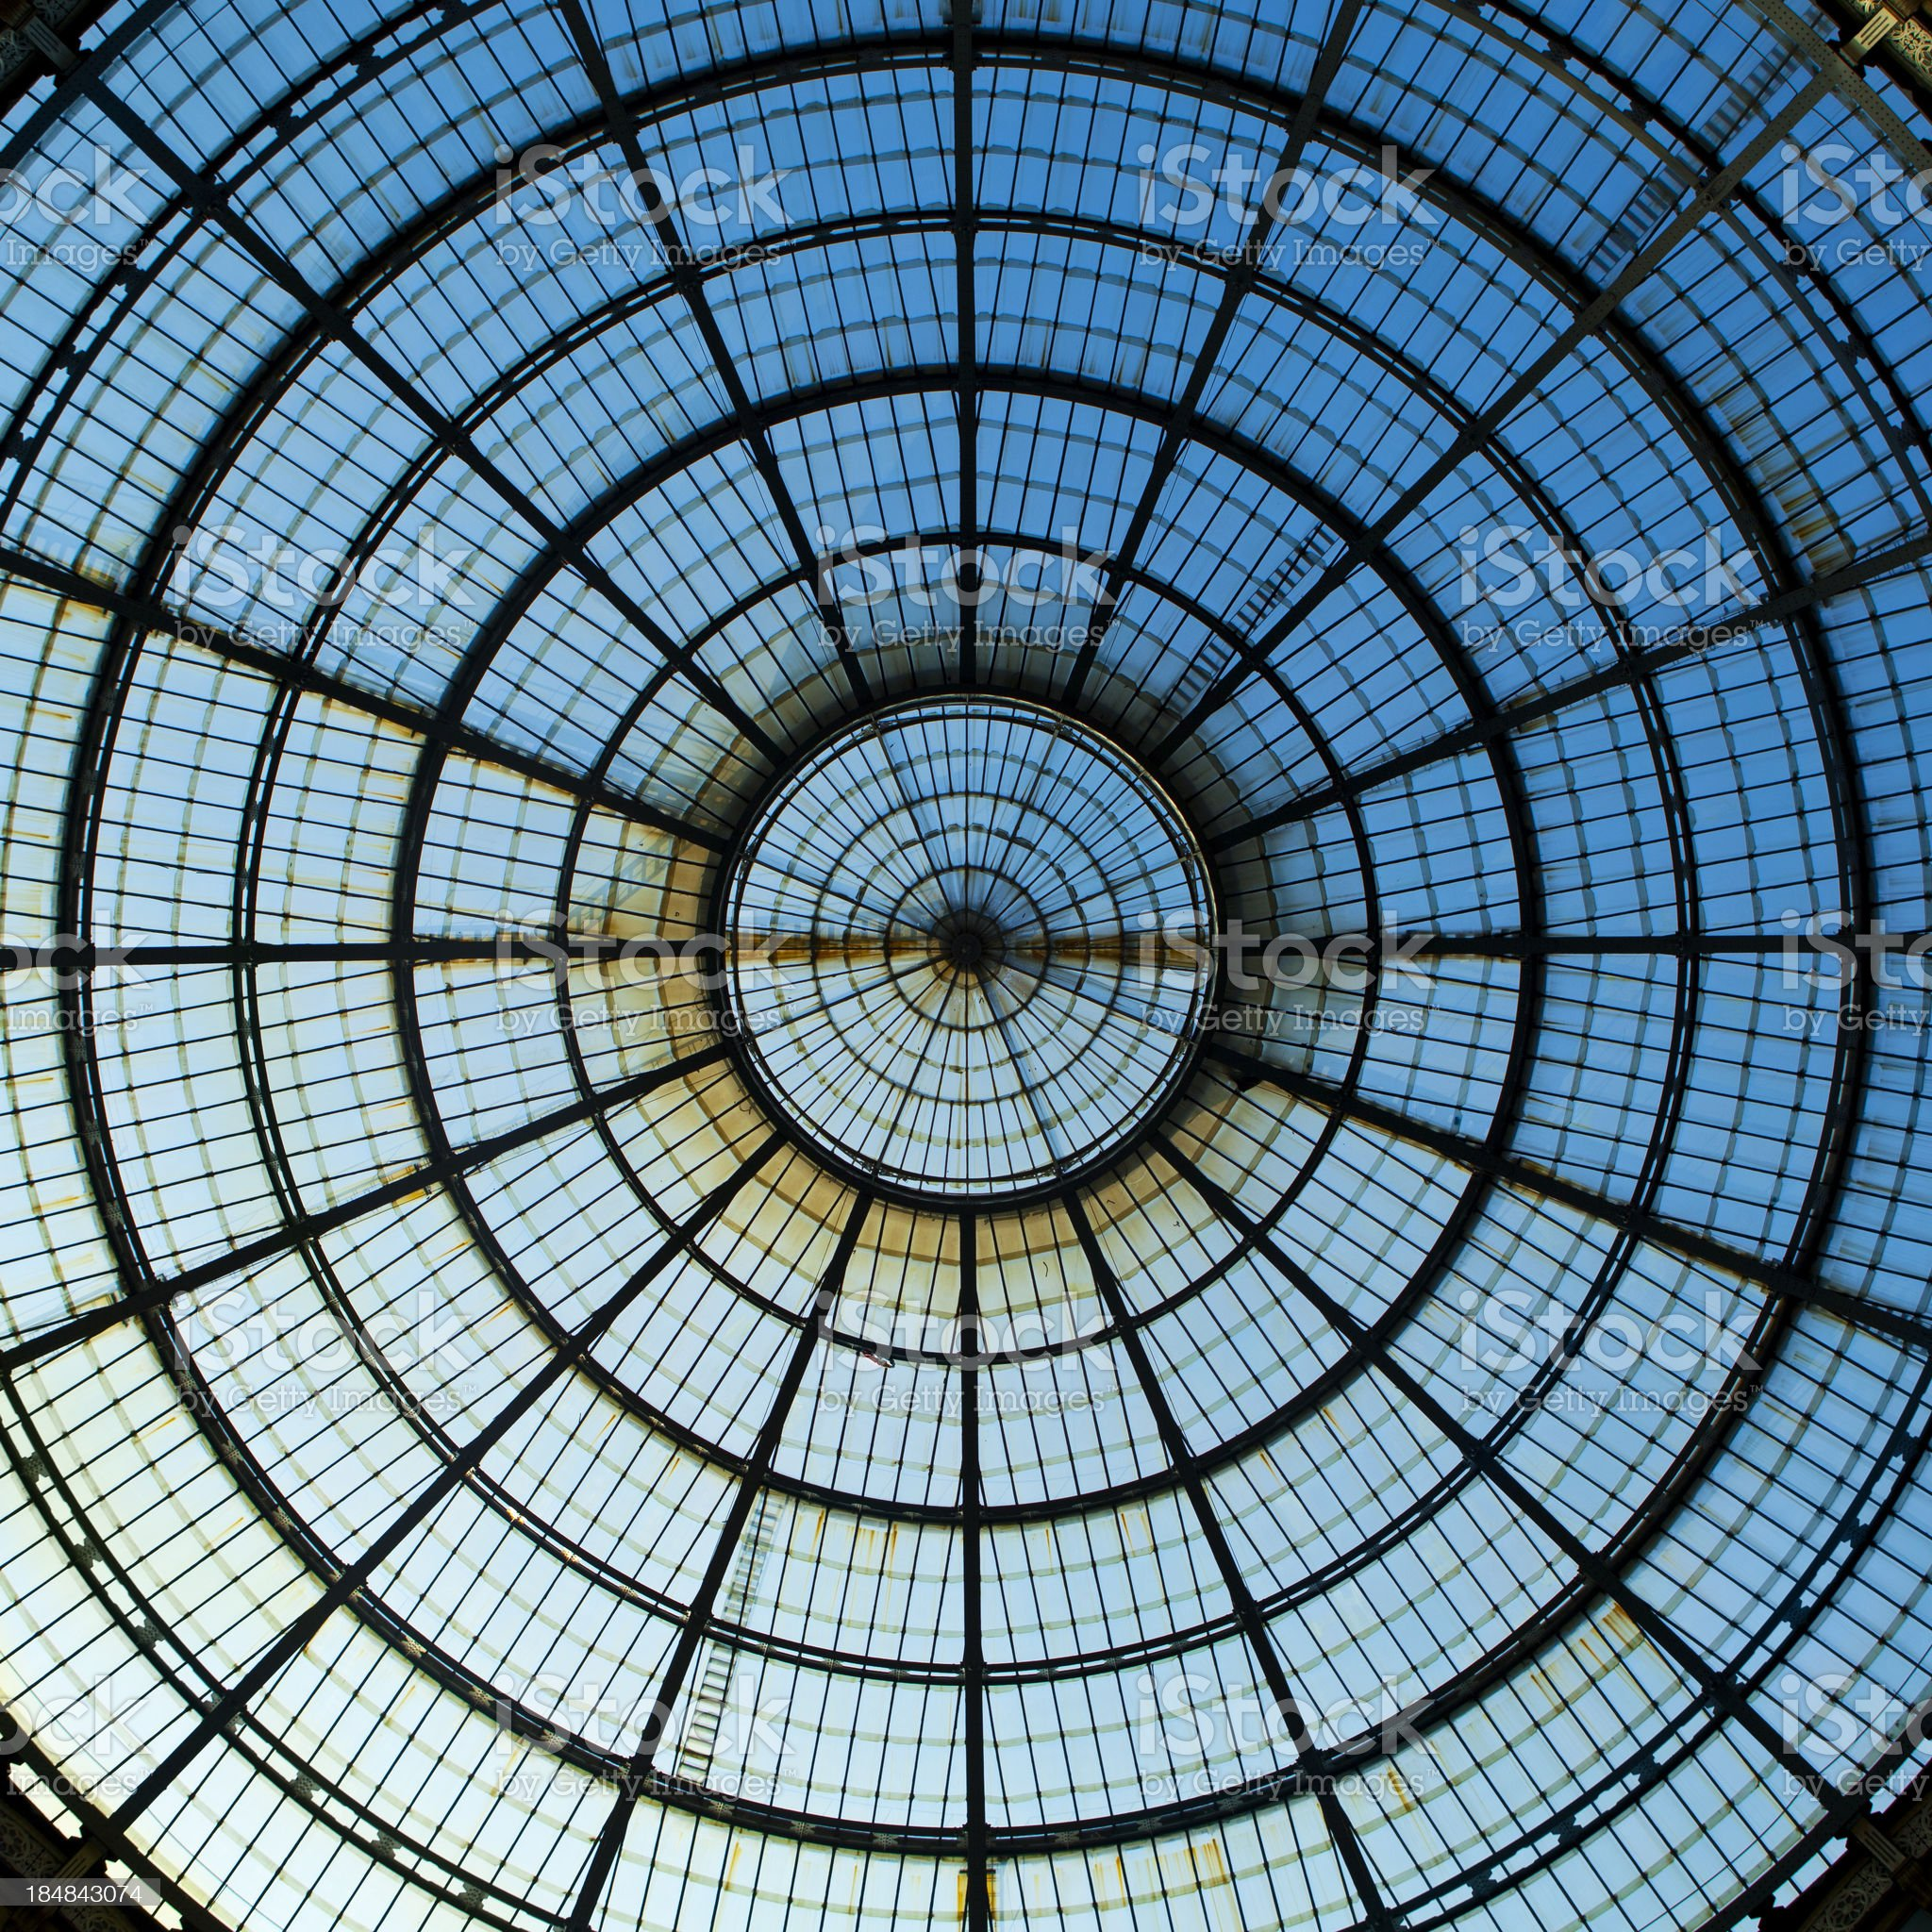 Dome at Galleria Vittorio Emanuelle II royalty-free stock photo